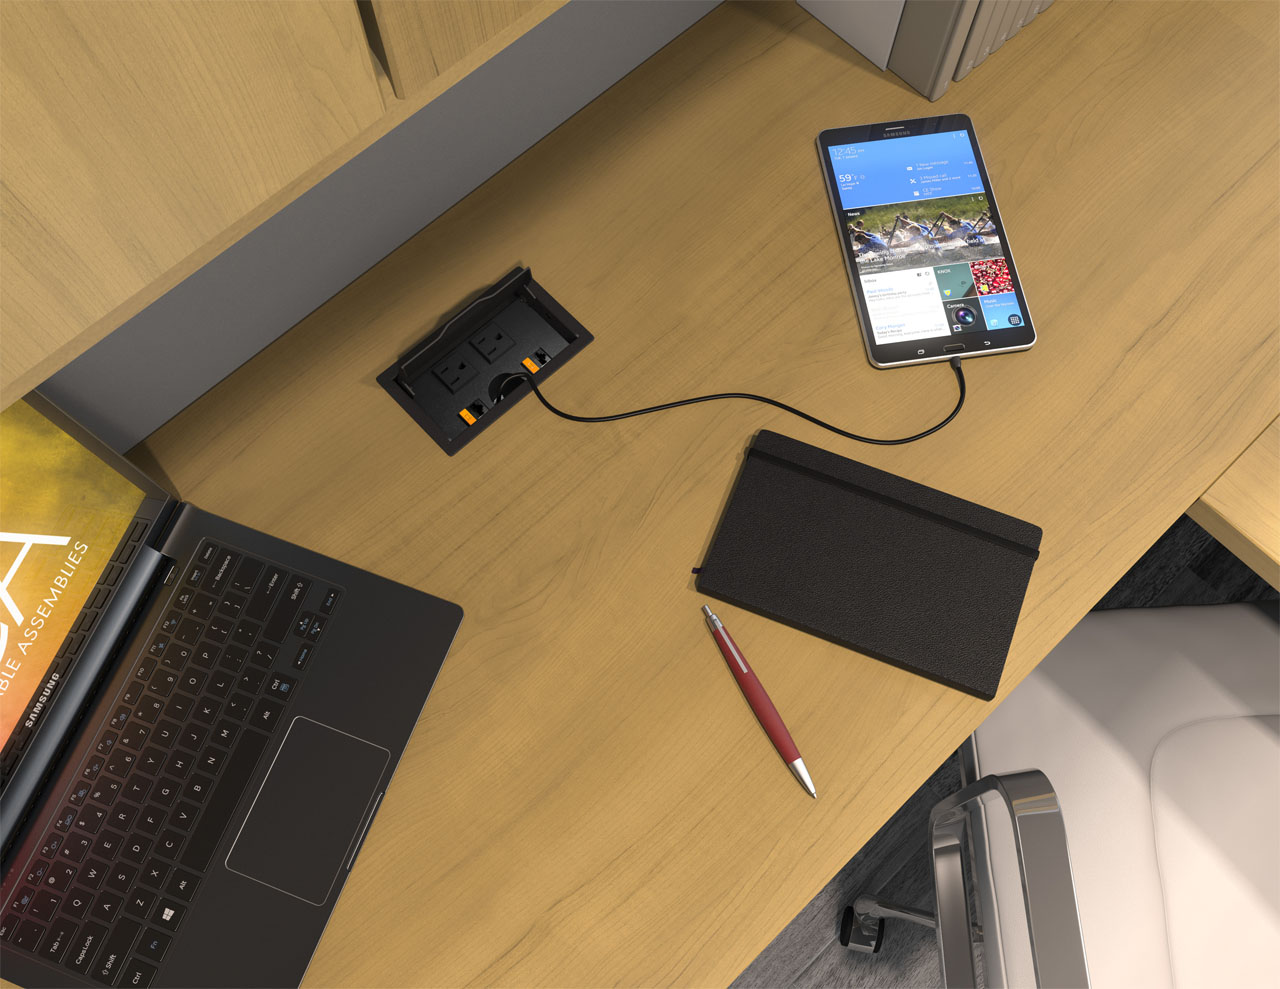 Top view rendering of a cubicle workspace with a flip top style ECA power hub providing power to devices on the desk.